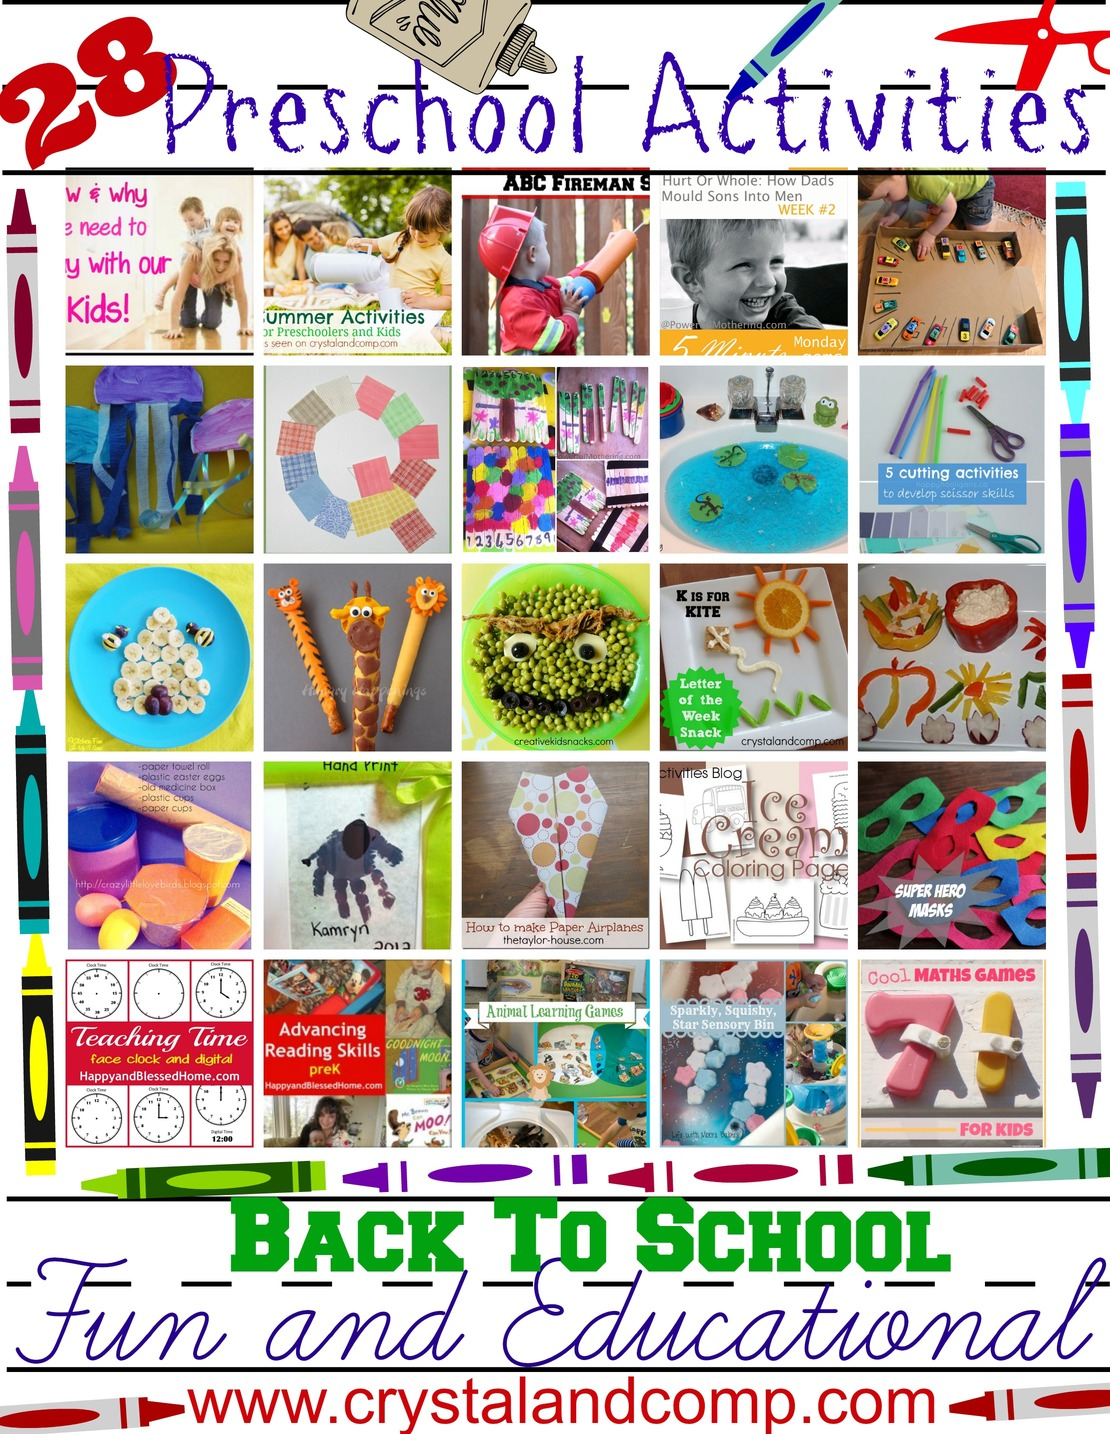 28 Fun And Educational Preschool Activities For Back To